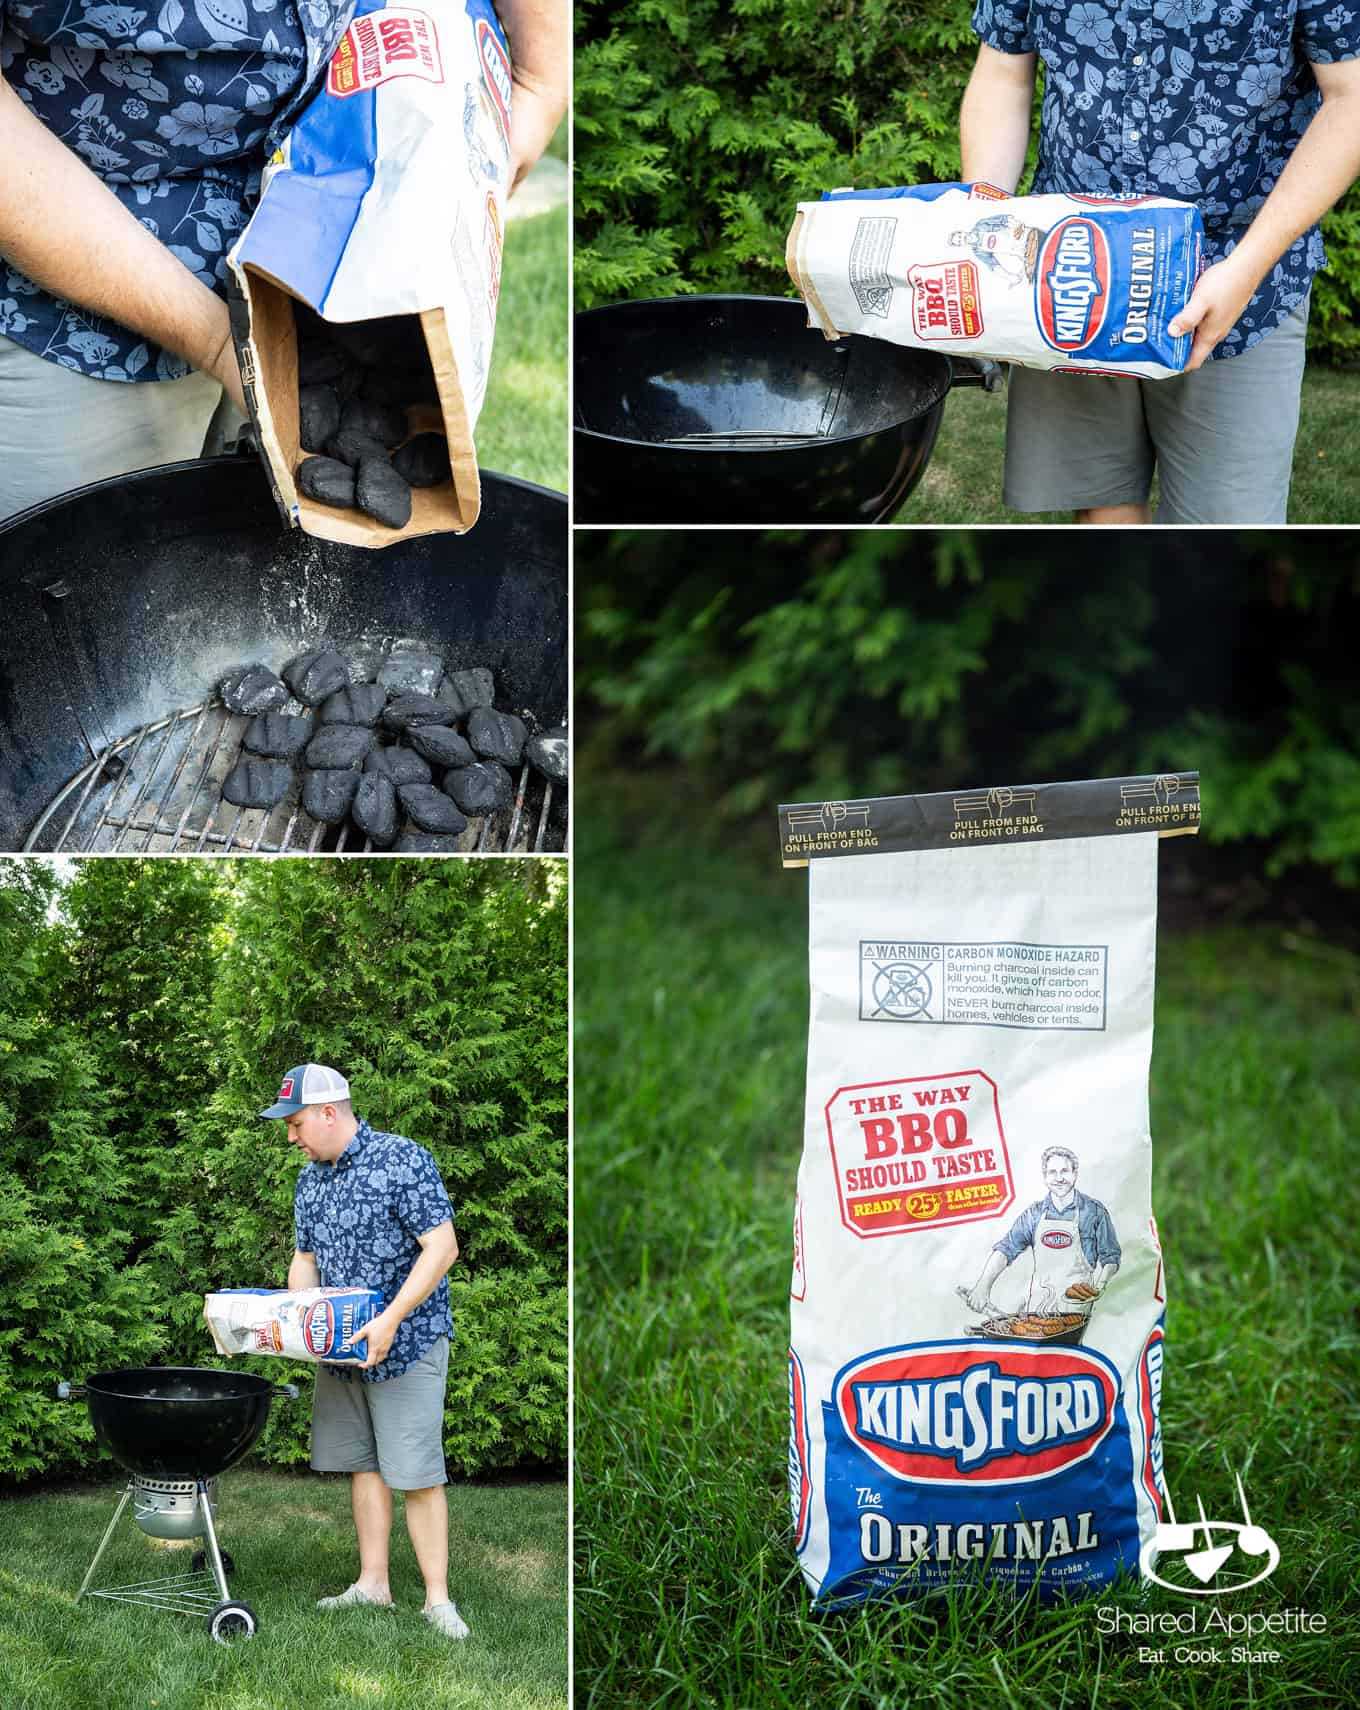 grilling these Peach Bourbon Glazed Pork Chops with Kingsford charcoal | sharedappetite.com